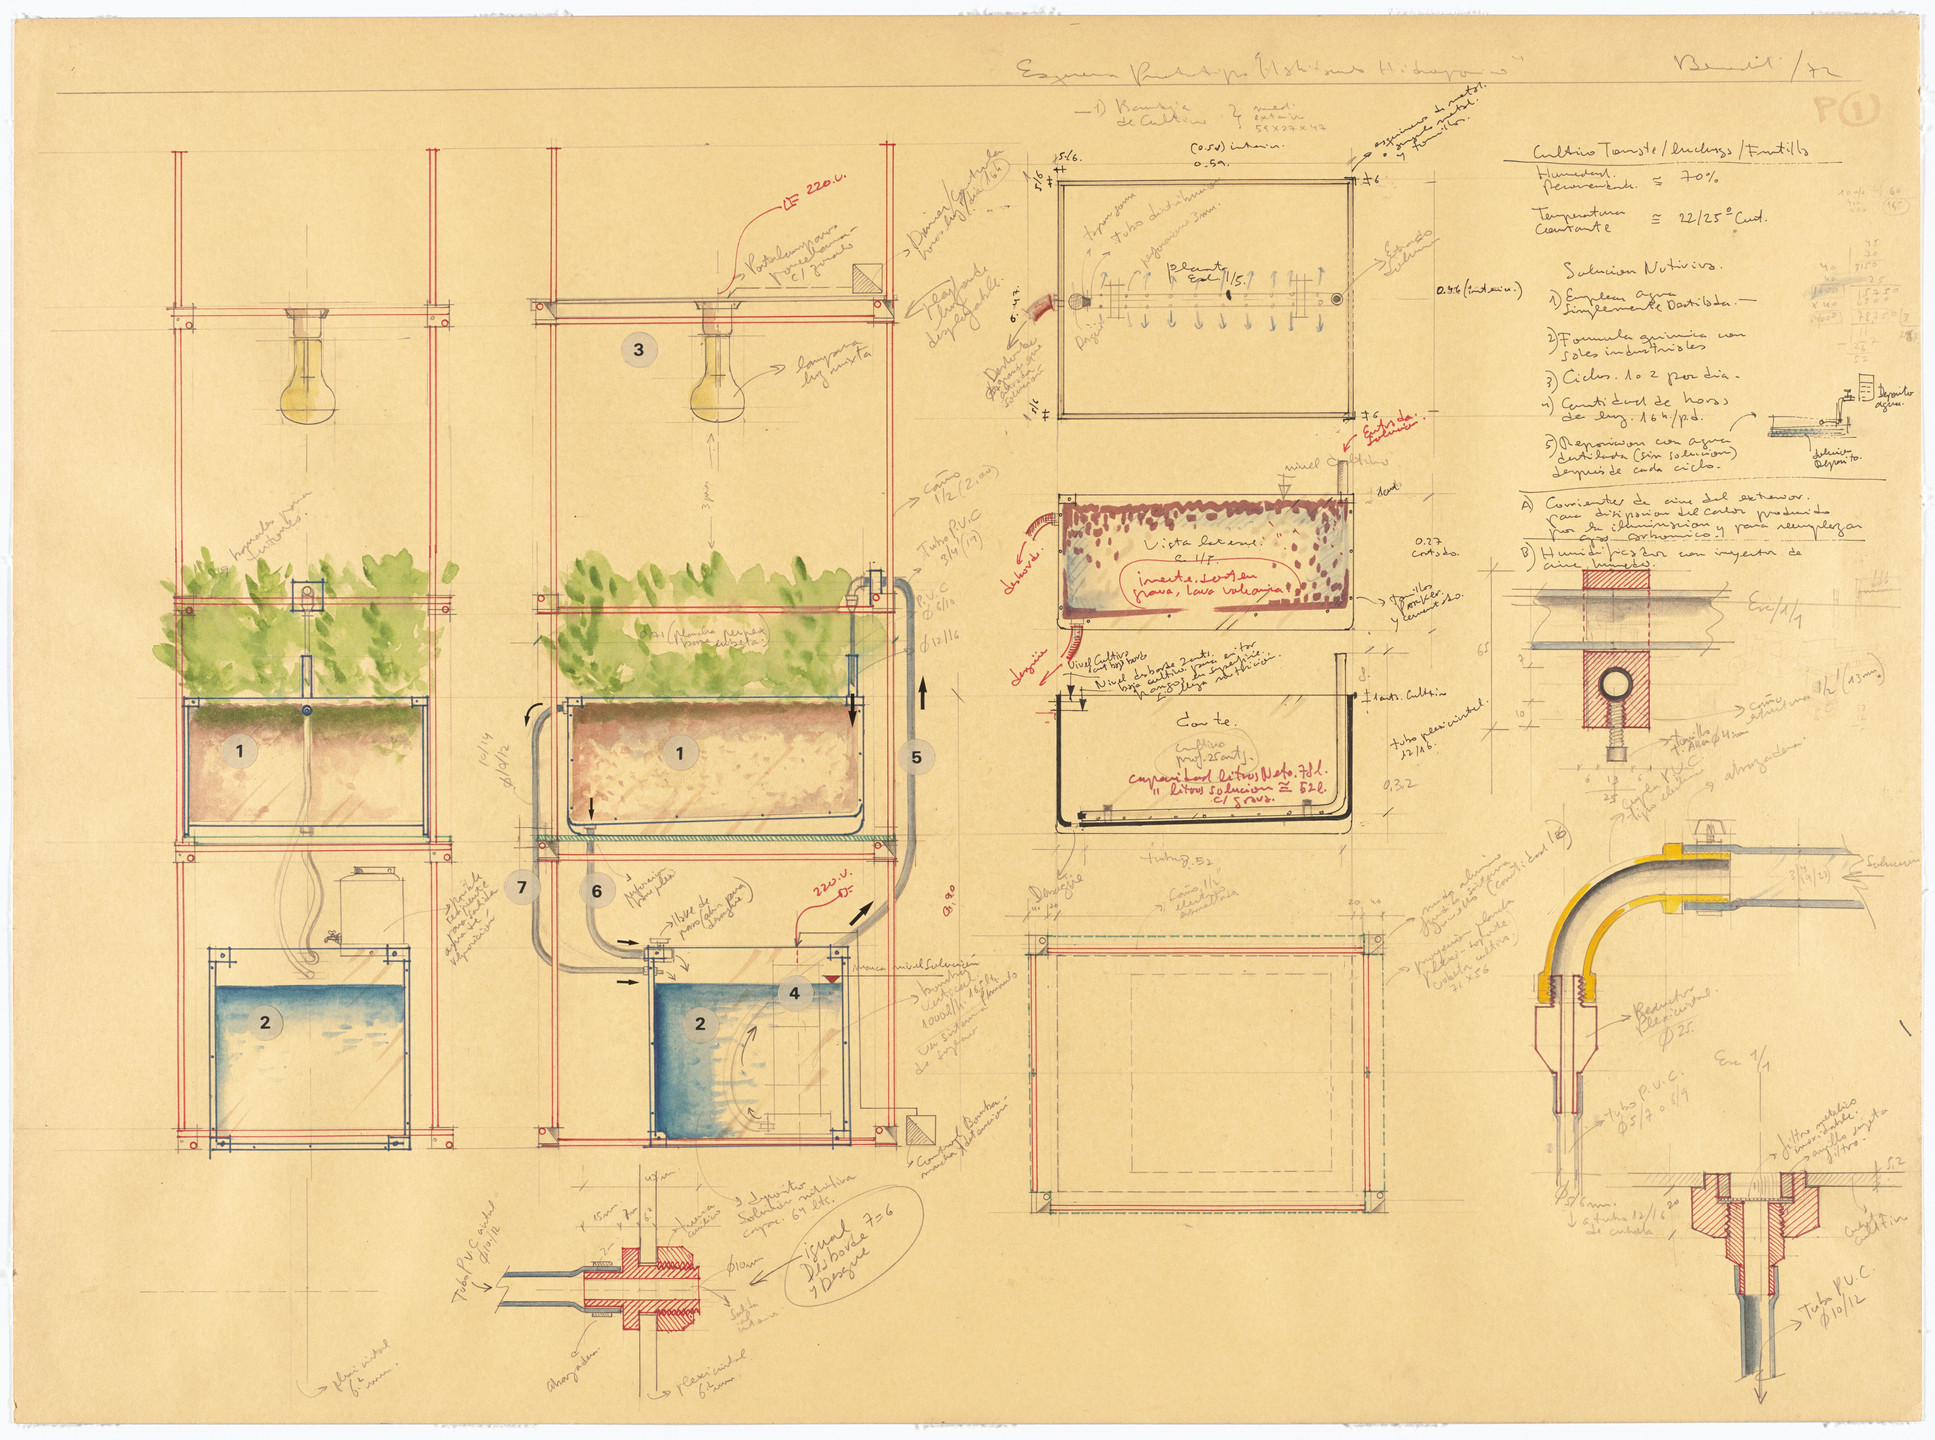 Luis Fernando Benedit. Drawing for Phytotron: Hydroponic Environment for Plants. 1972